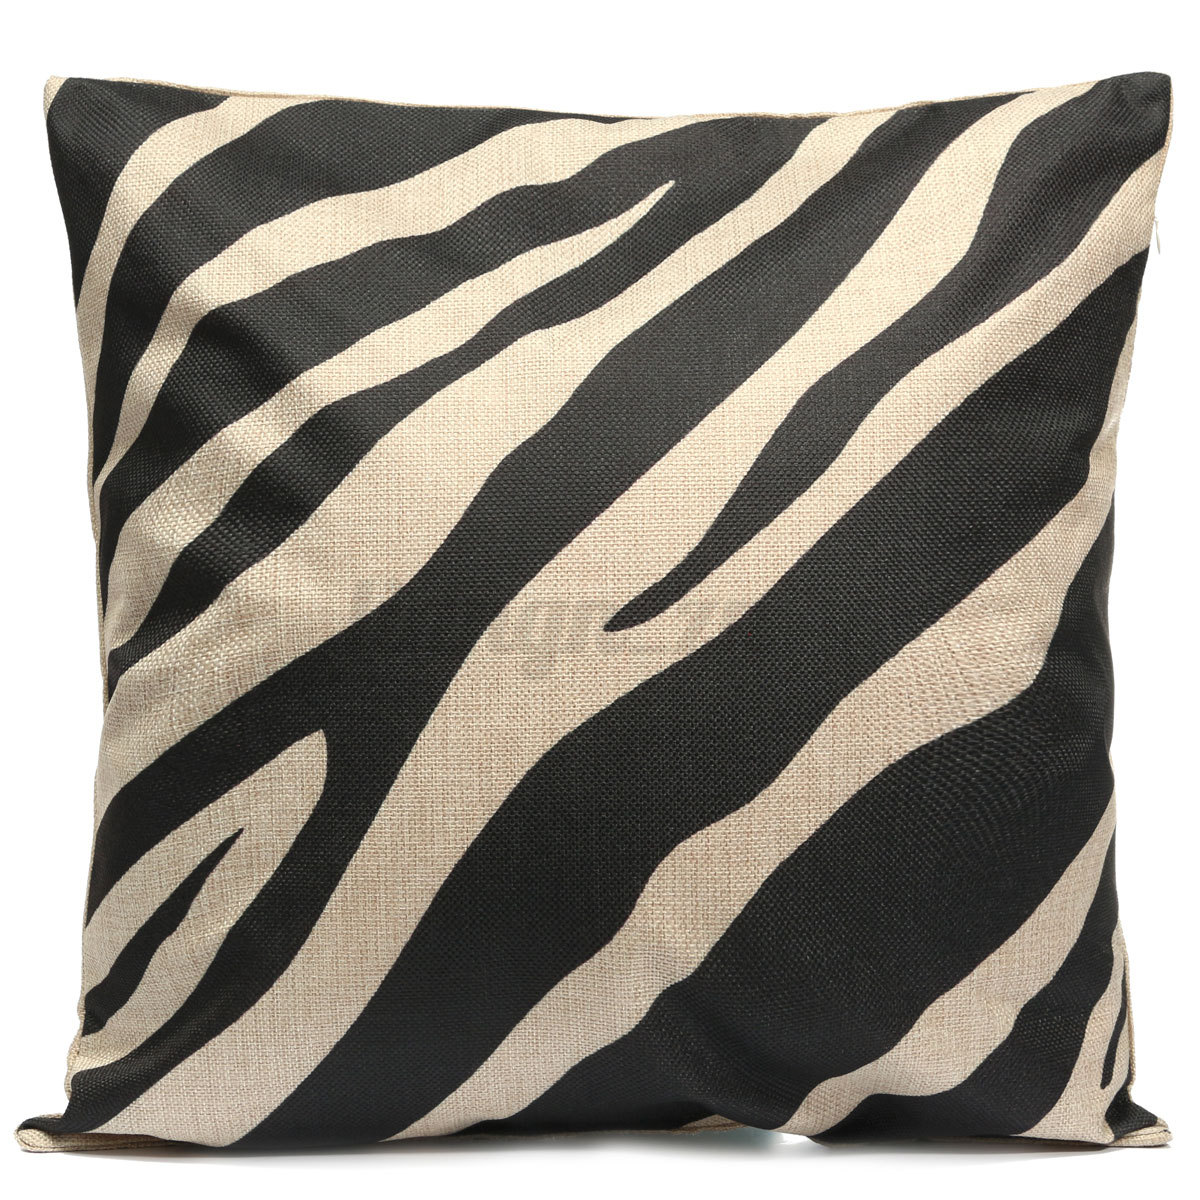 g om trie housse de coussin taie d 39 oreiller voiture canap maison cushion cover ebay. Black Bedroom Furniture Sets. Home Design Ideas